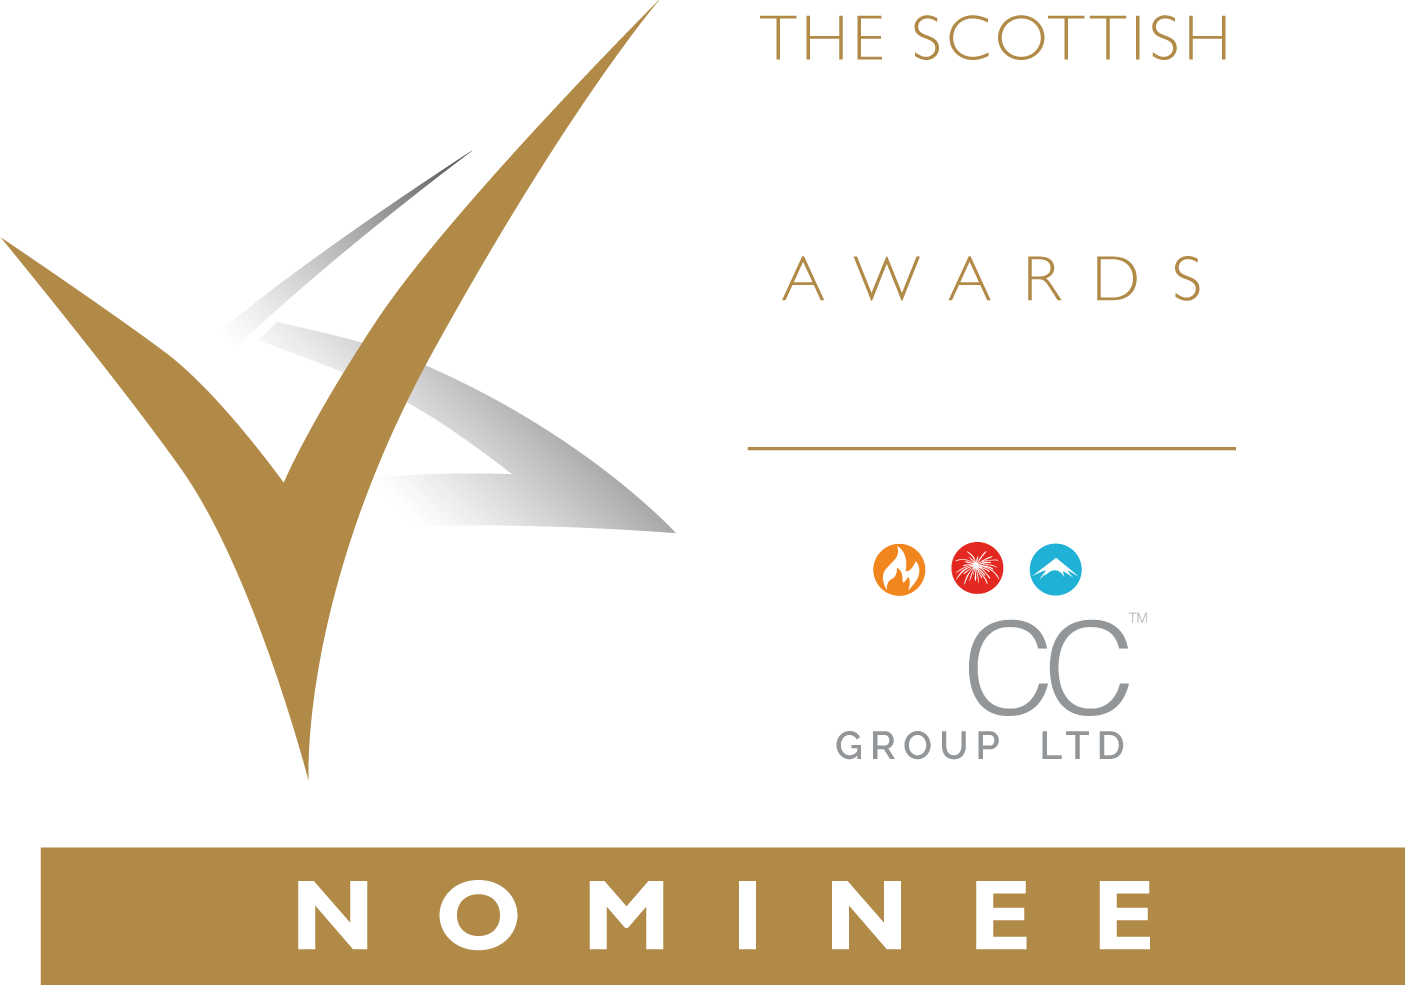 VOWS Awards: Nominated each year since 2005! Winners in 2006 and 2010.